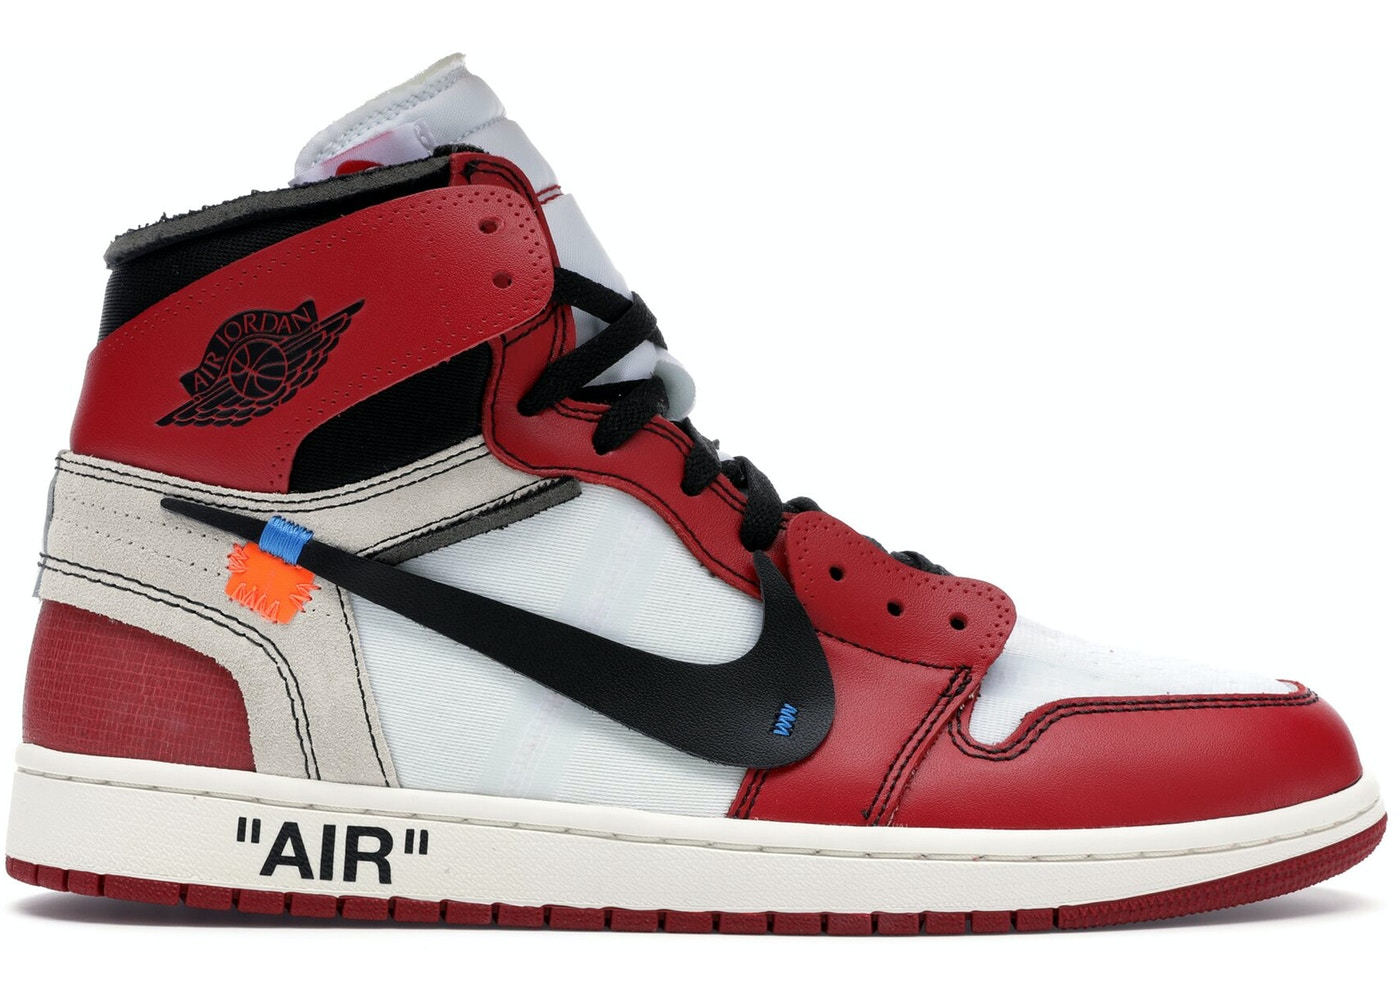 fc26a461454 Jordan 1 Retro High Off-White Chicago - AA3834-101